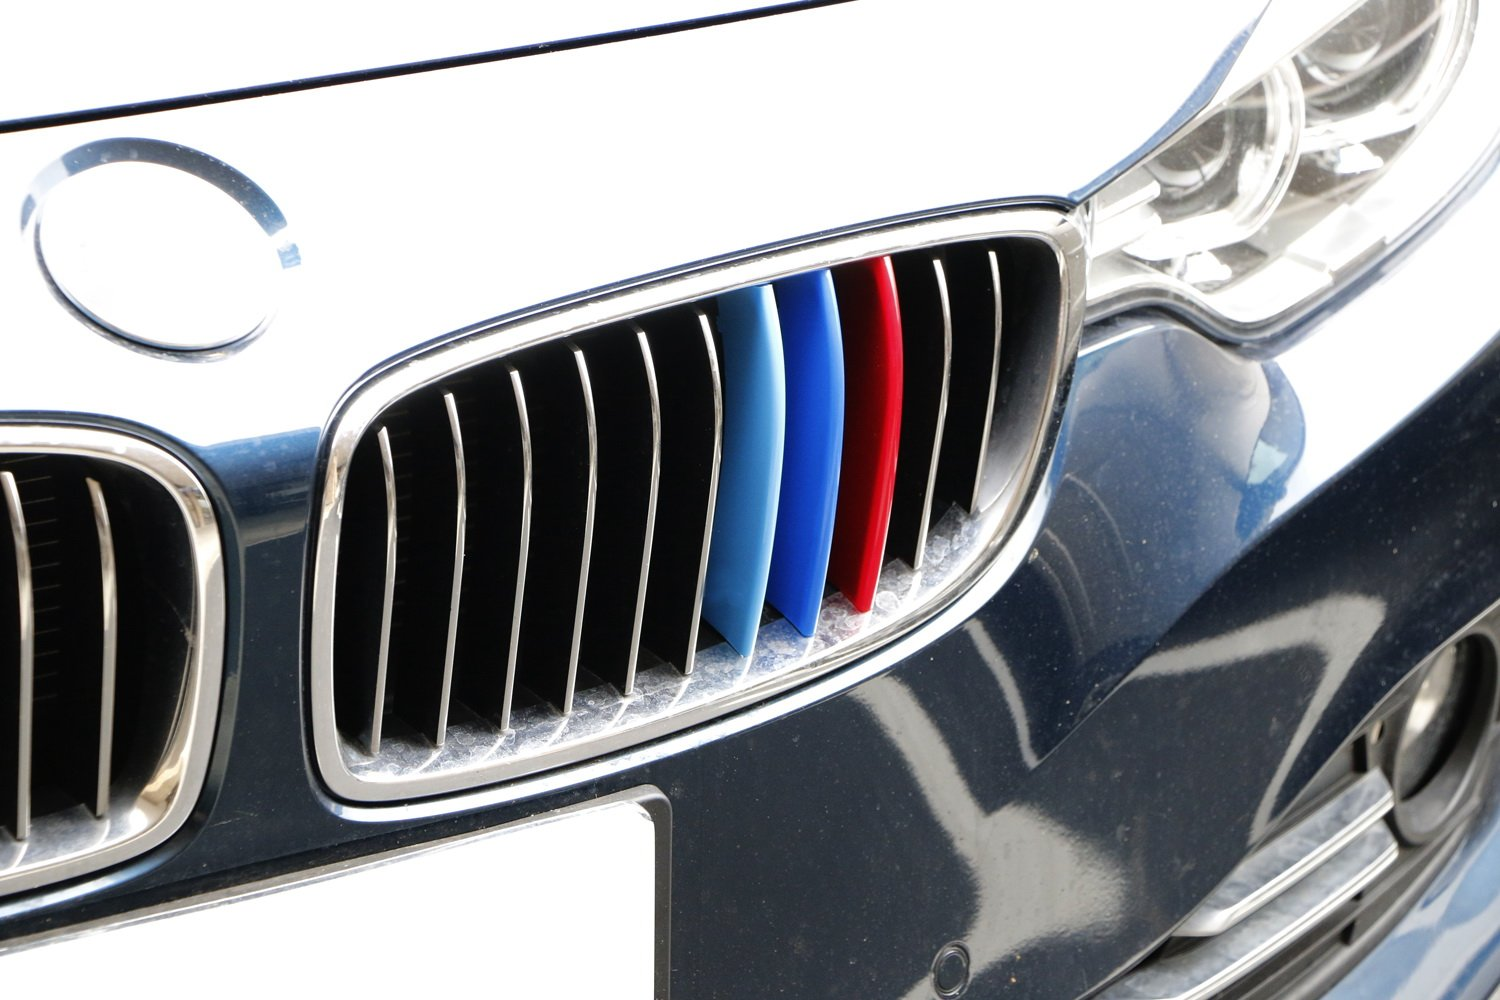 Does not fit 2017 X6 iJDMTOY Exact Fit //////M-Colored Grille Insert Trims For 2014-up BMW F15 X5 and 2015-2016 BMW F16 X6 Center Kidney Grill